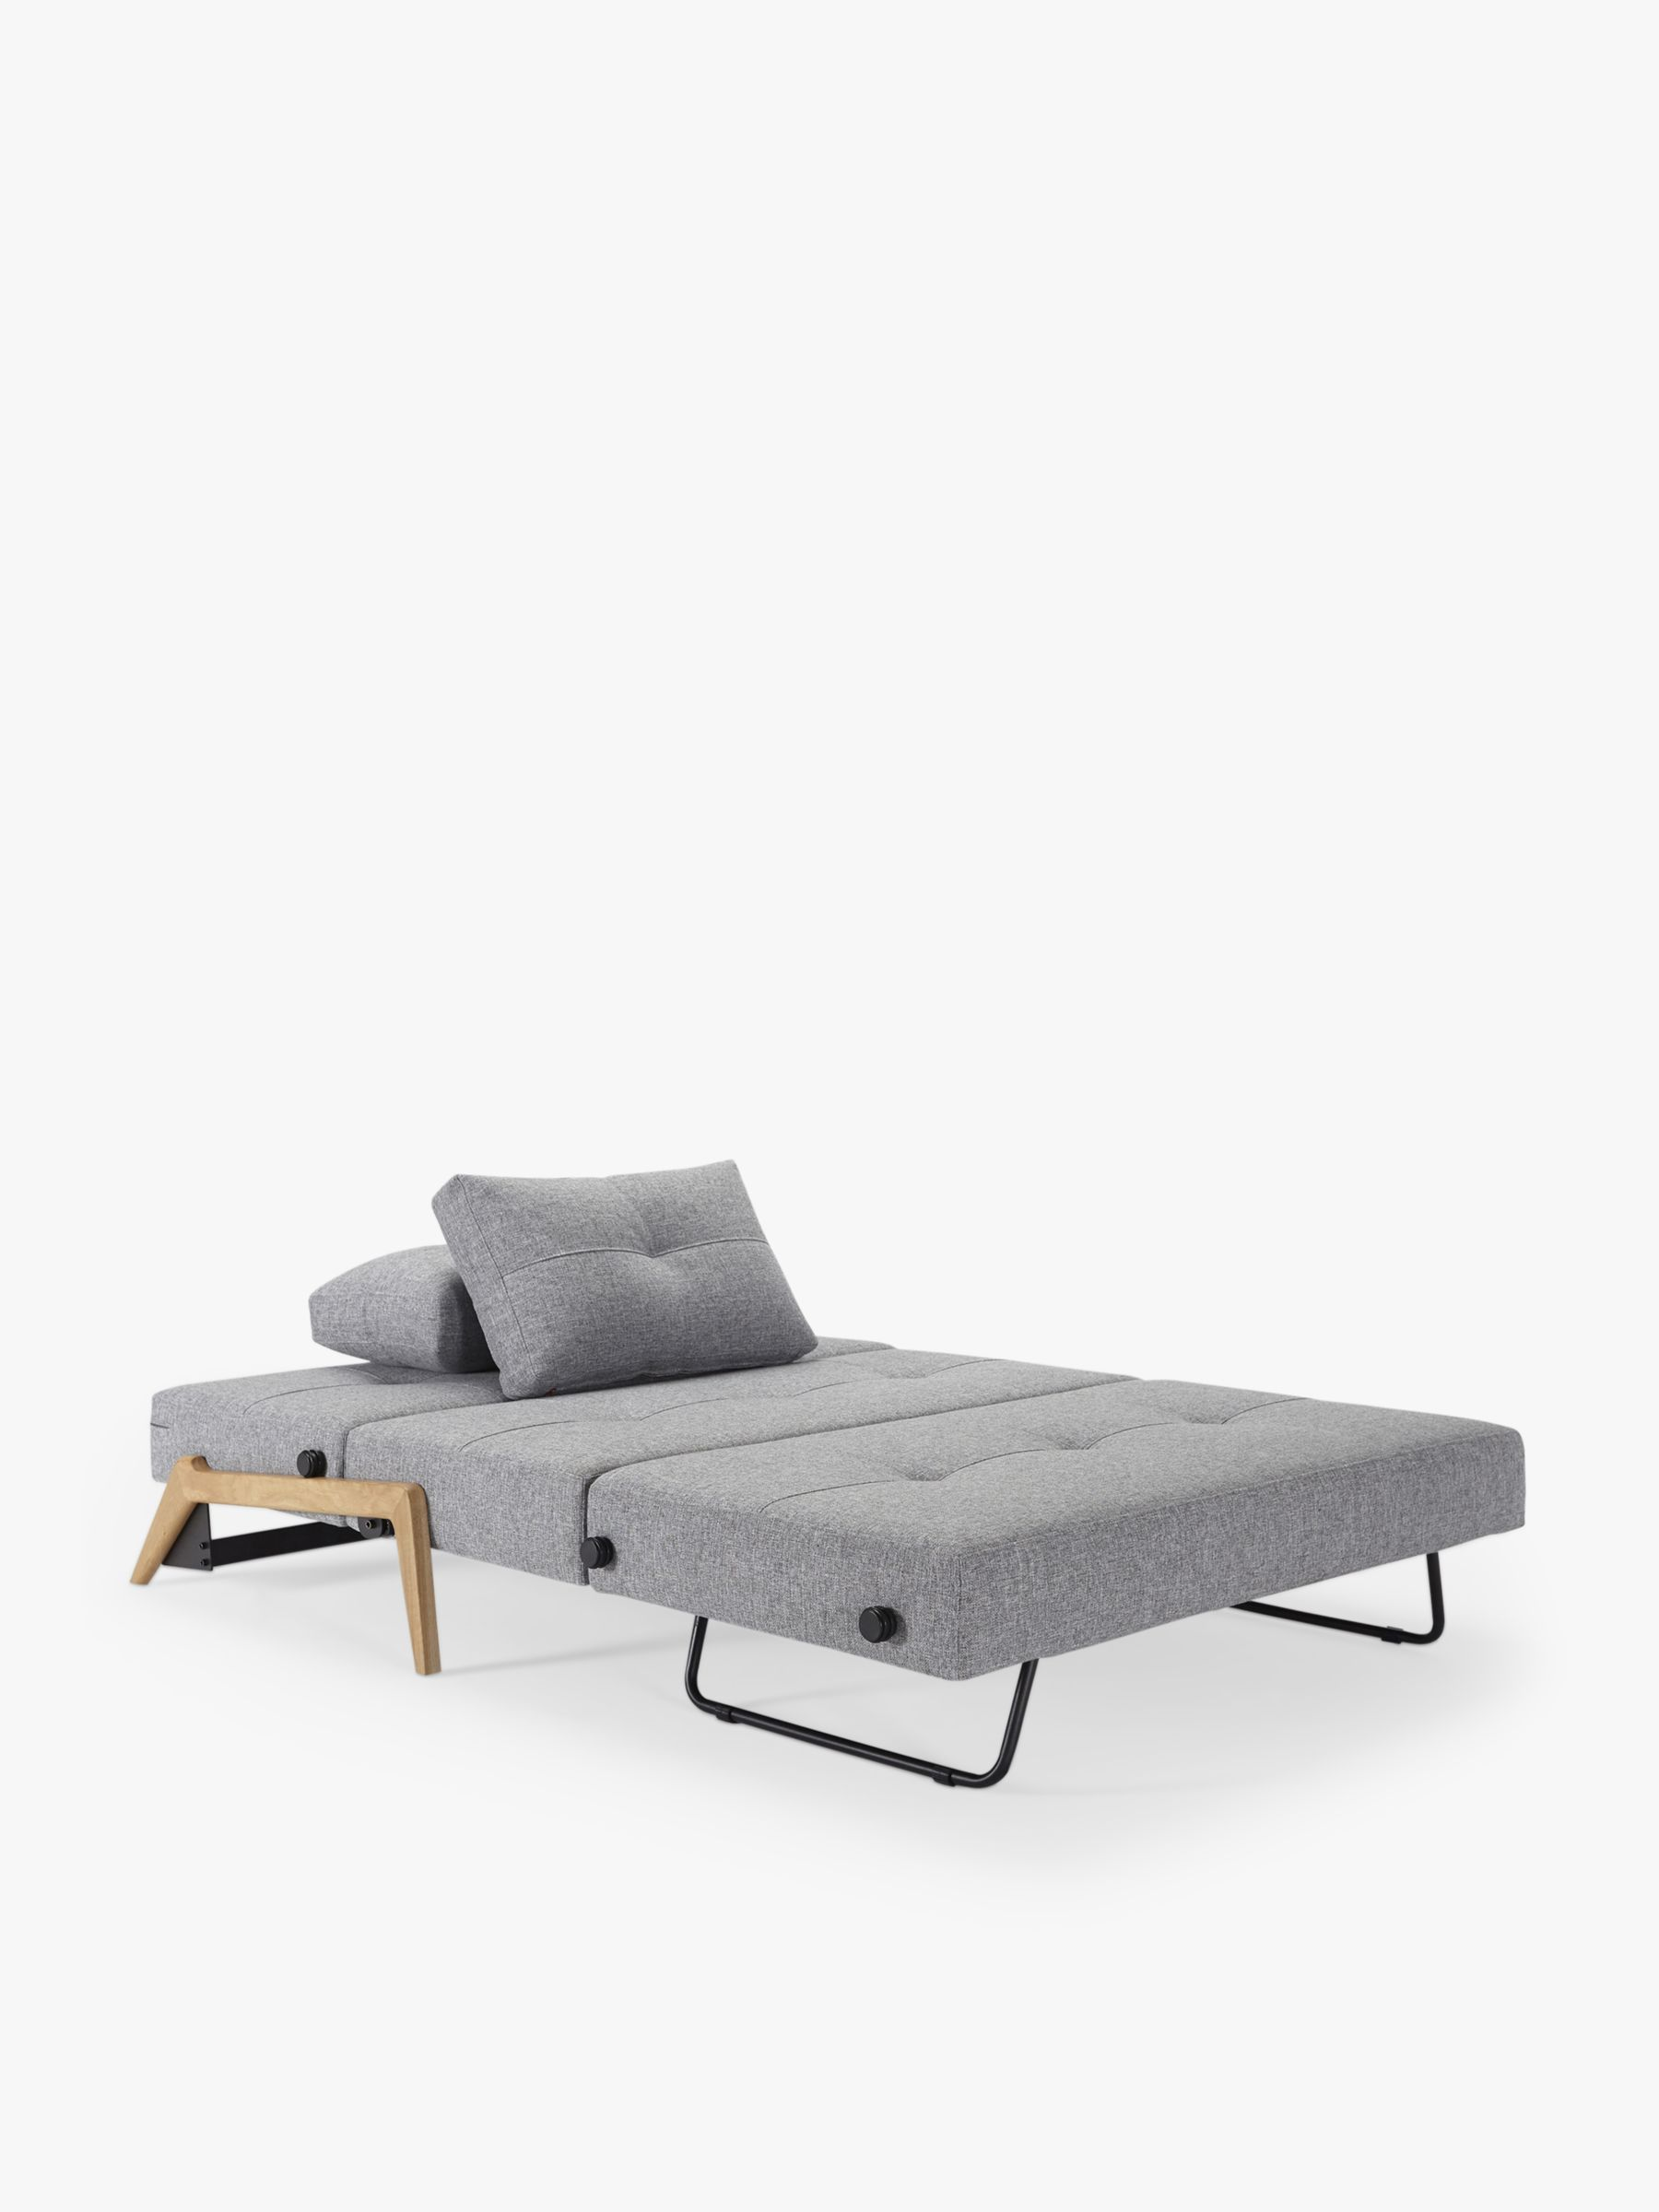 Buy Innovation Cubed 140 Sofa Bed with Serpentine Sprung Foam